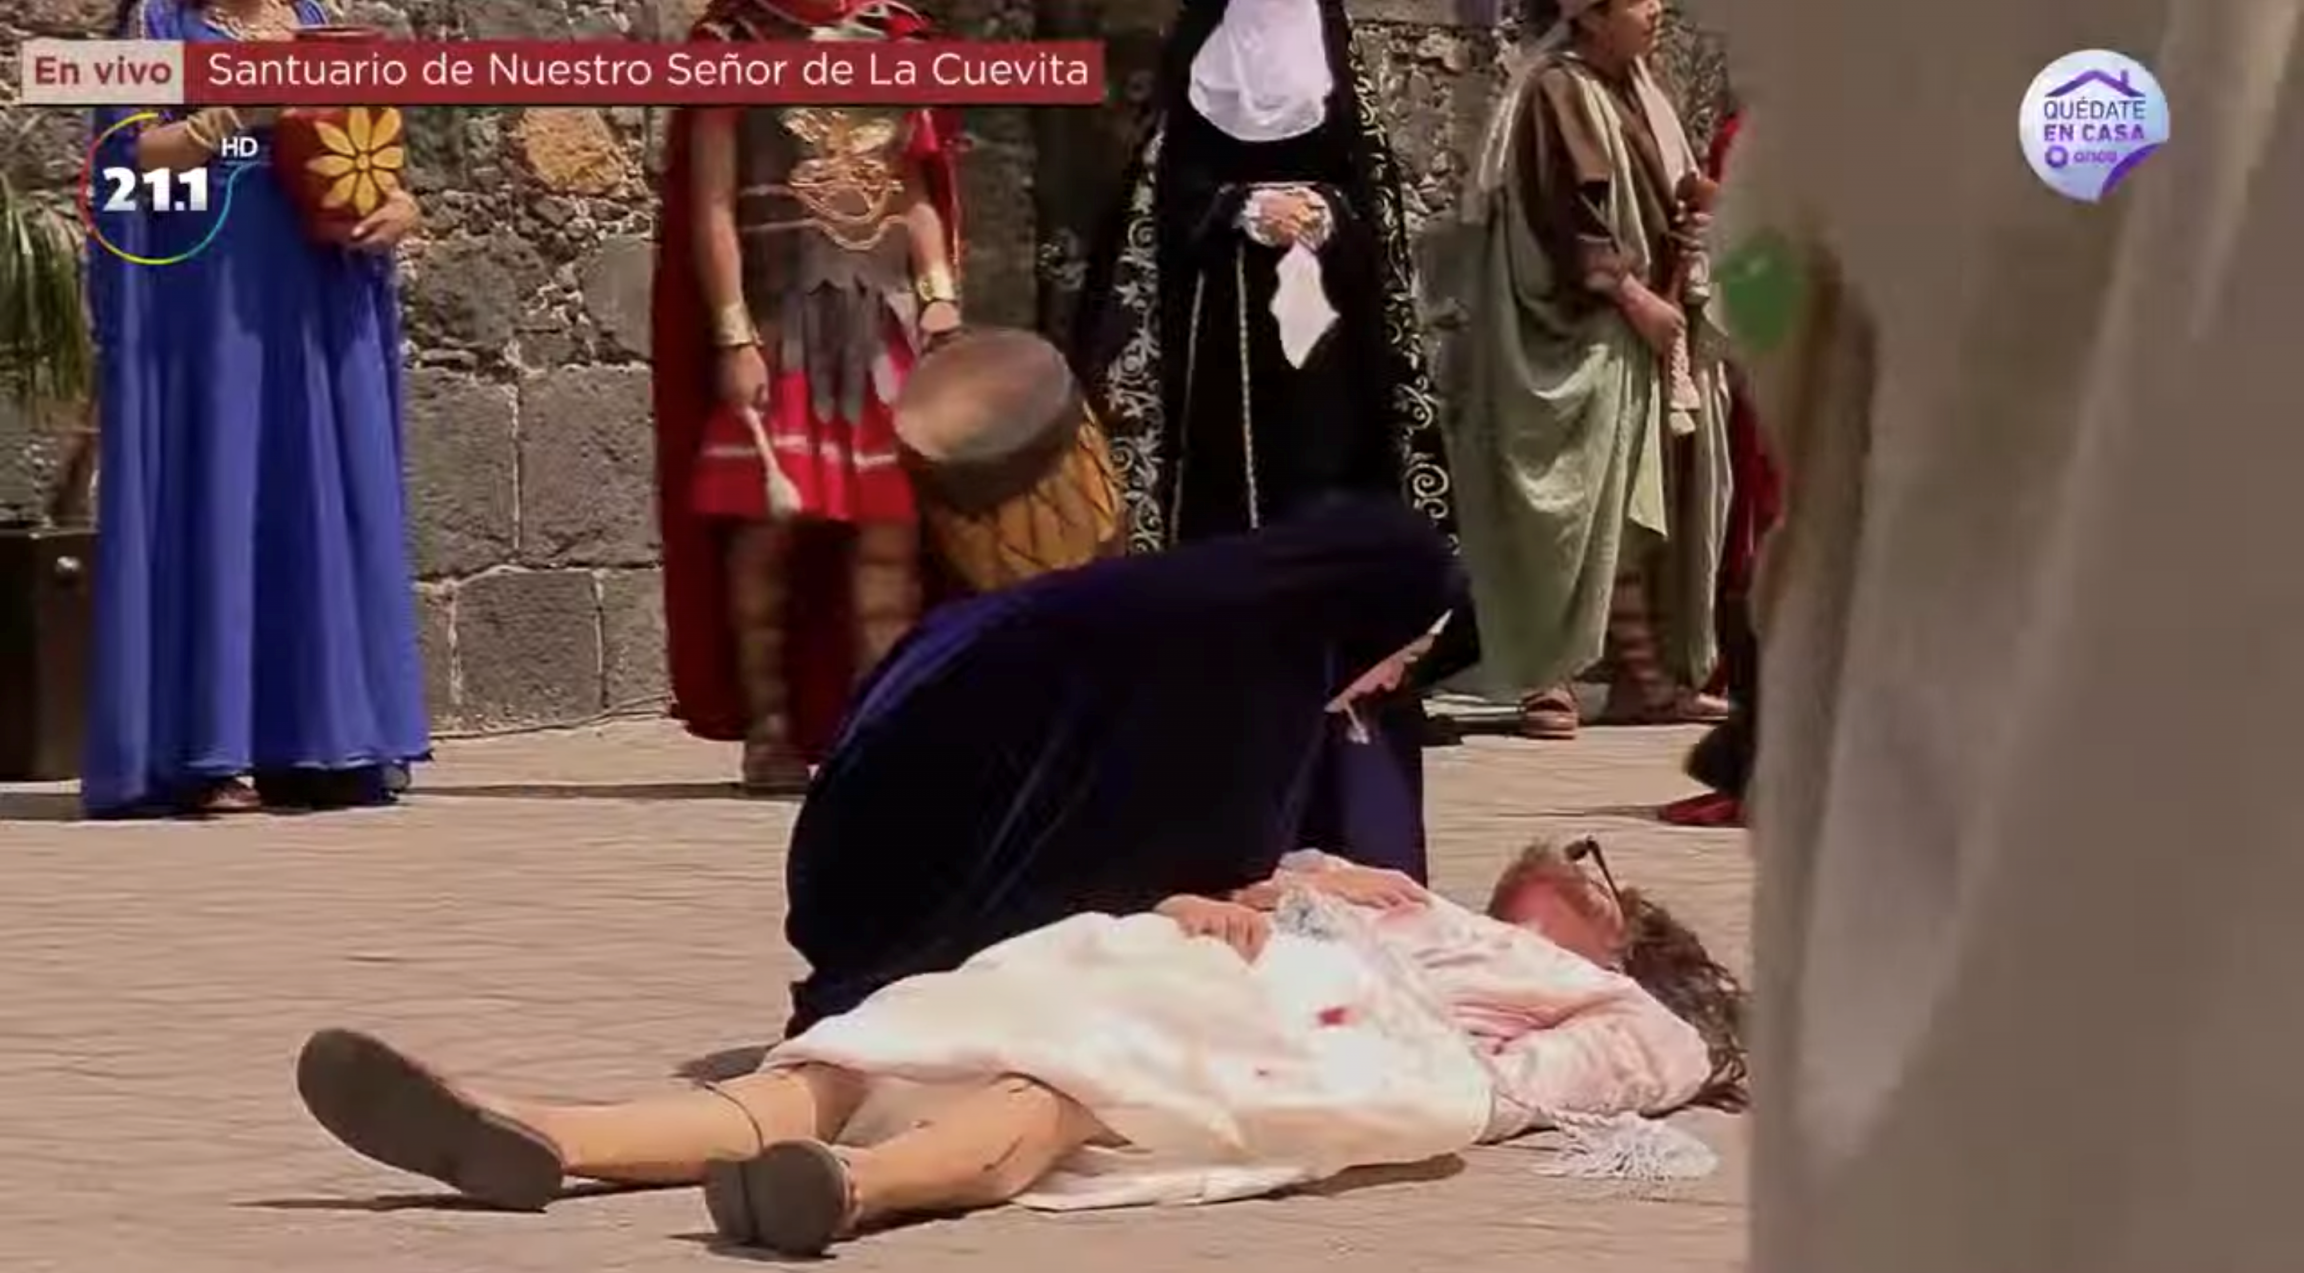 Ana Laura Ortega Jurado, 19, portrayed the Virgin Mary and Manuel Rueda, 19, portrayed Jesus in a reenactment of the Stations of the Cross in Mexico City on April 10, 2020.